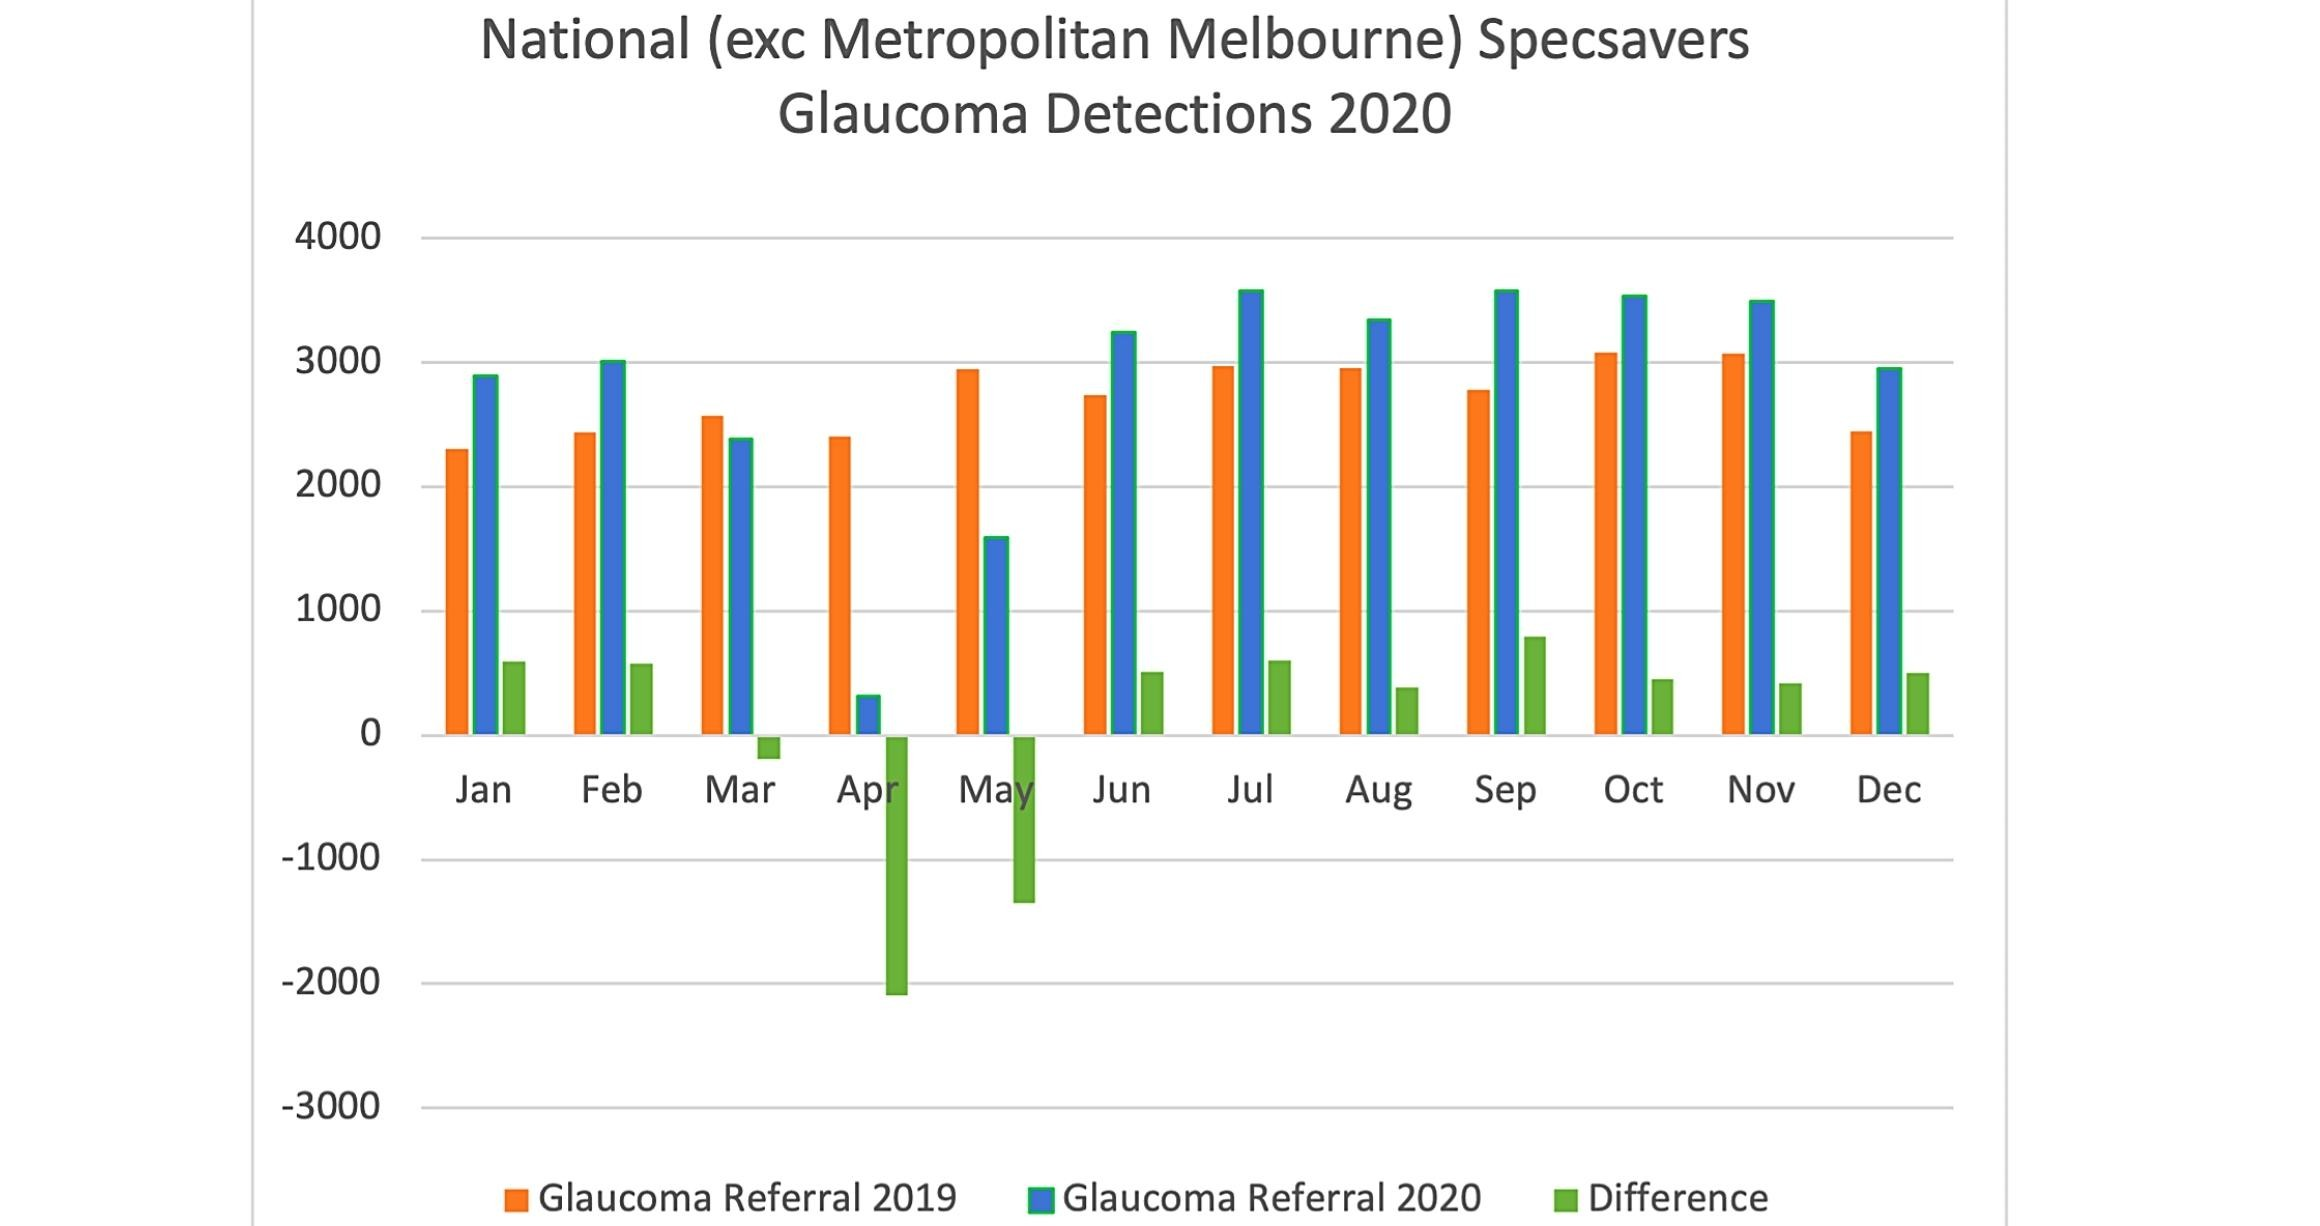 Figure 1. National (excluding metropolitan Melbourne) glaucoma detections in 2020.